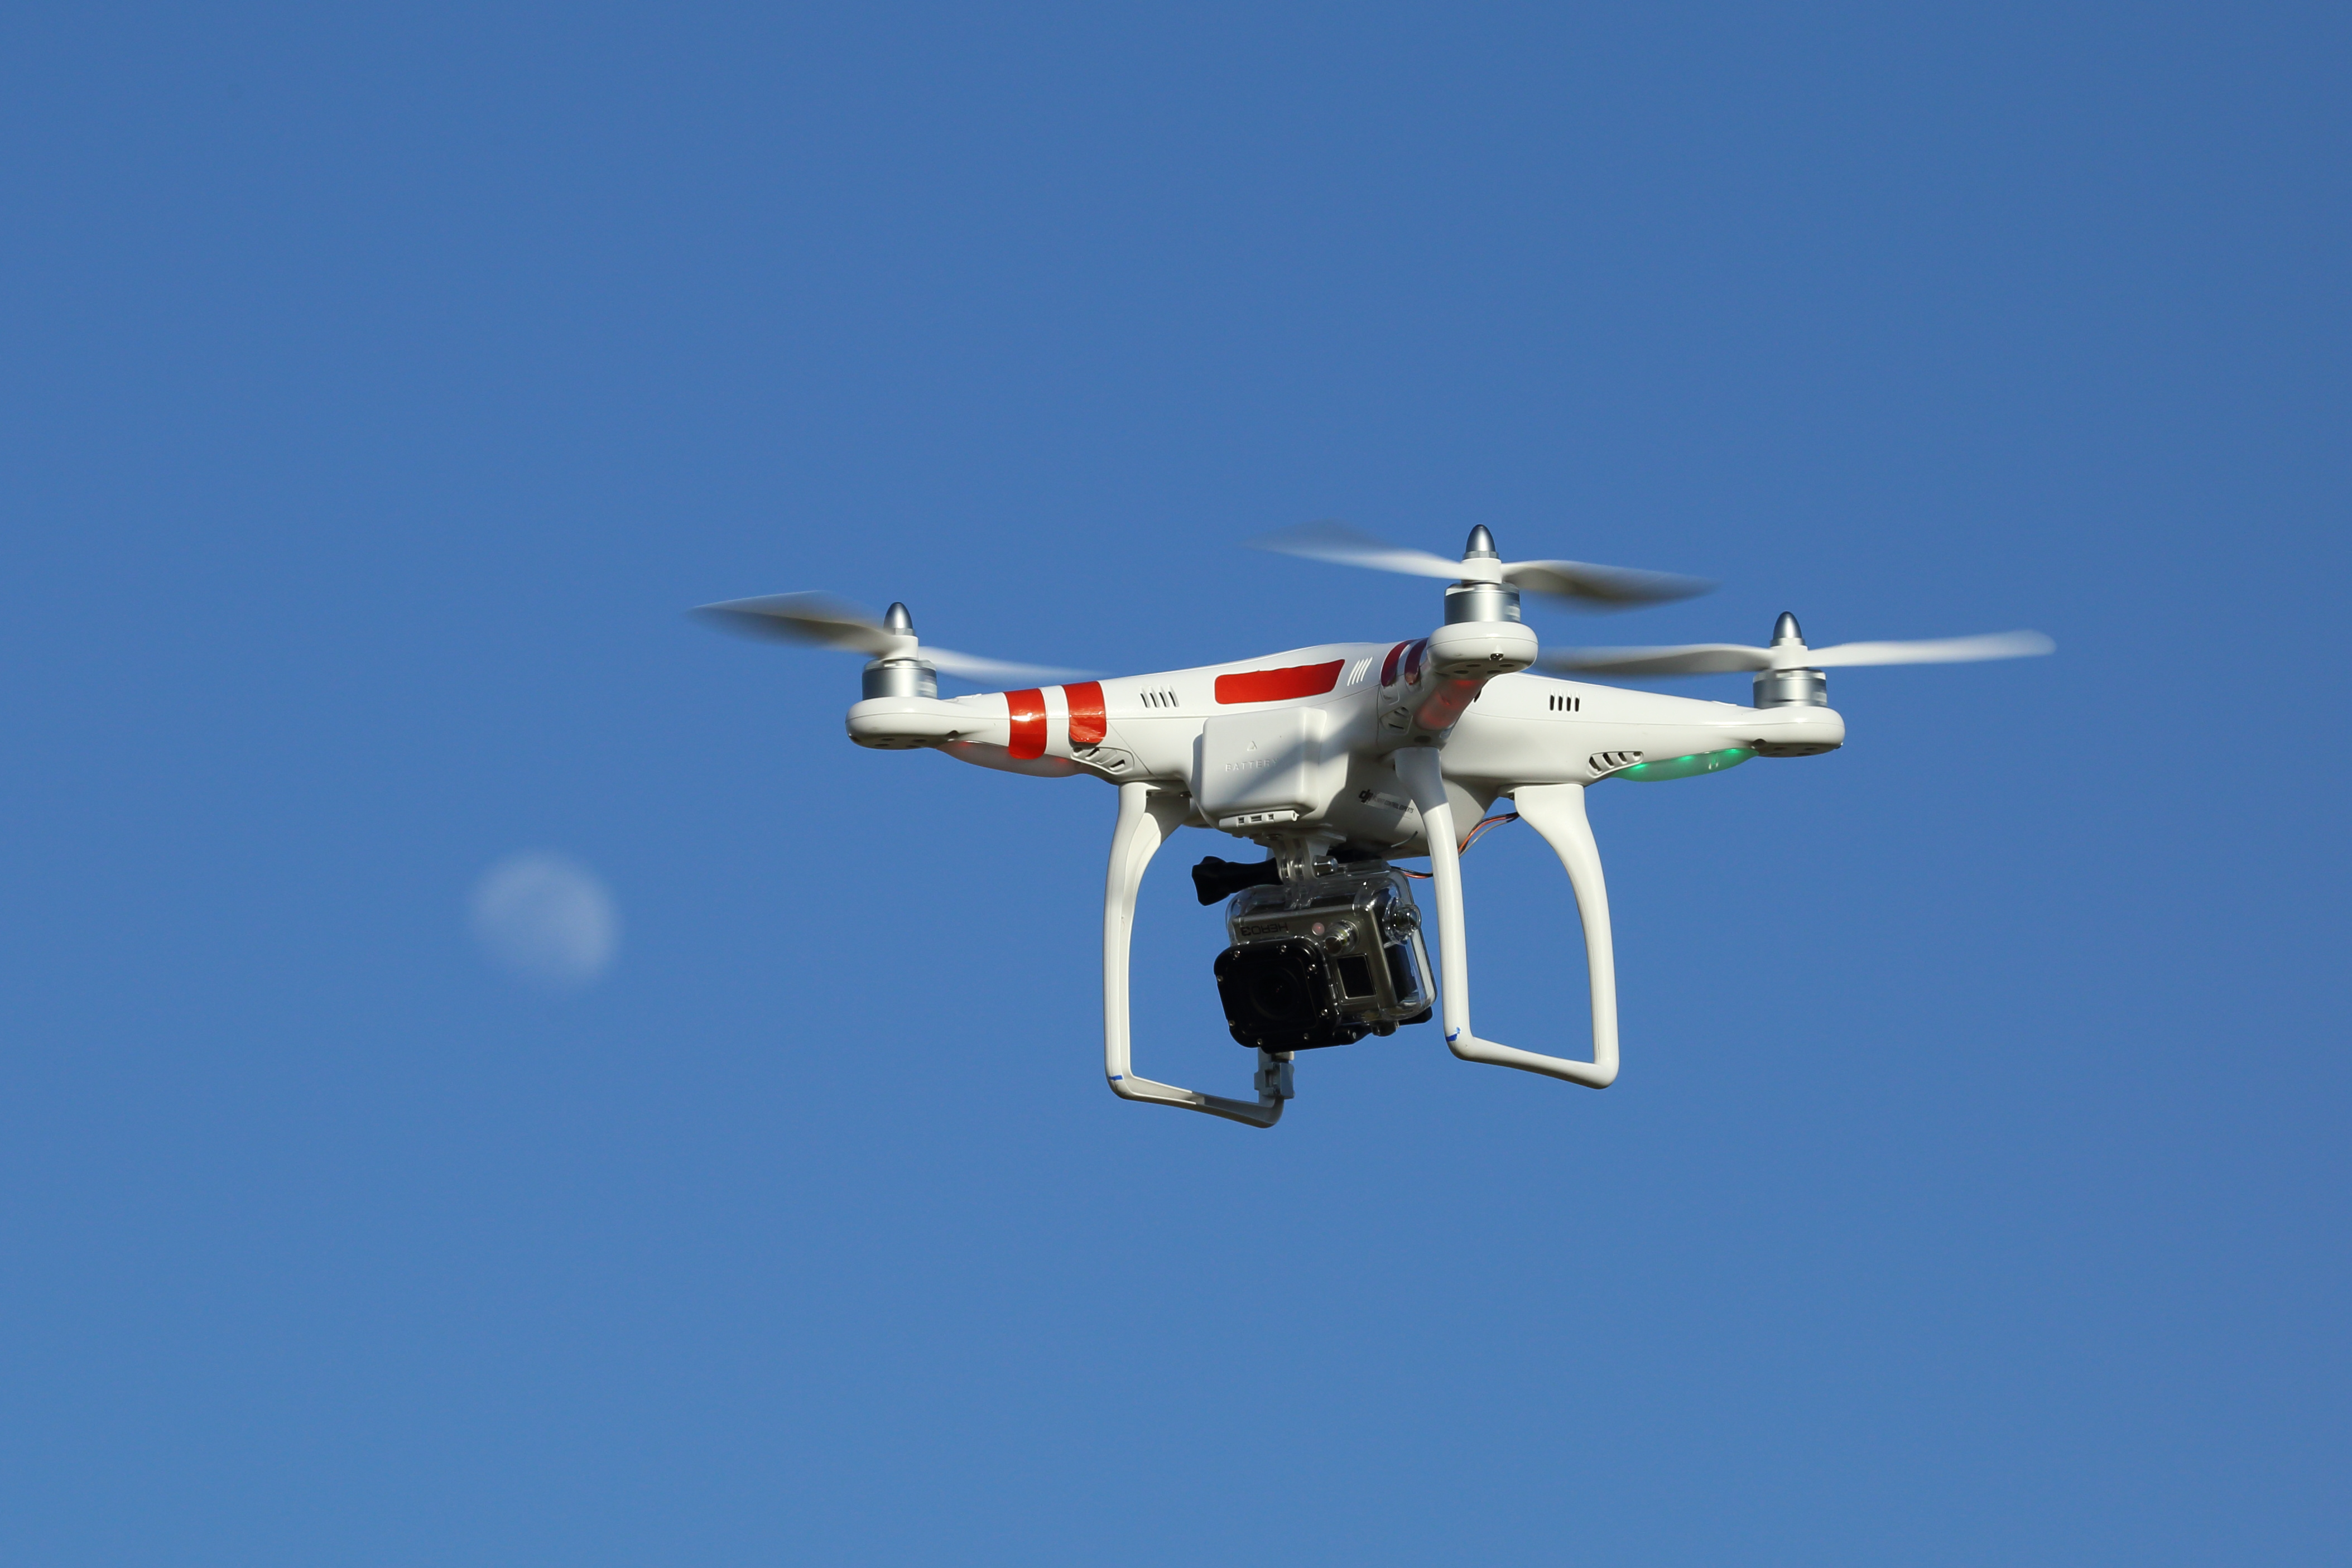 Drones To Provide The Fastest Delivery - Image 1